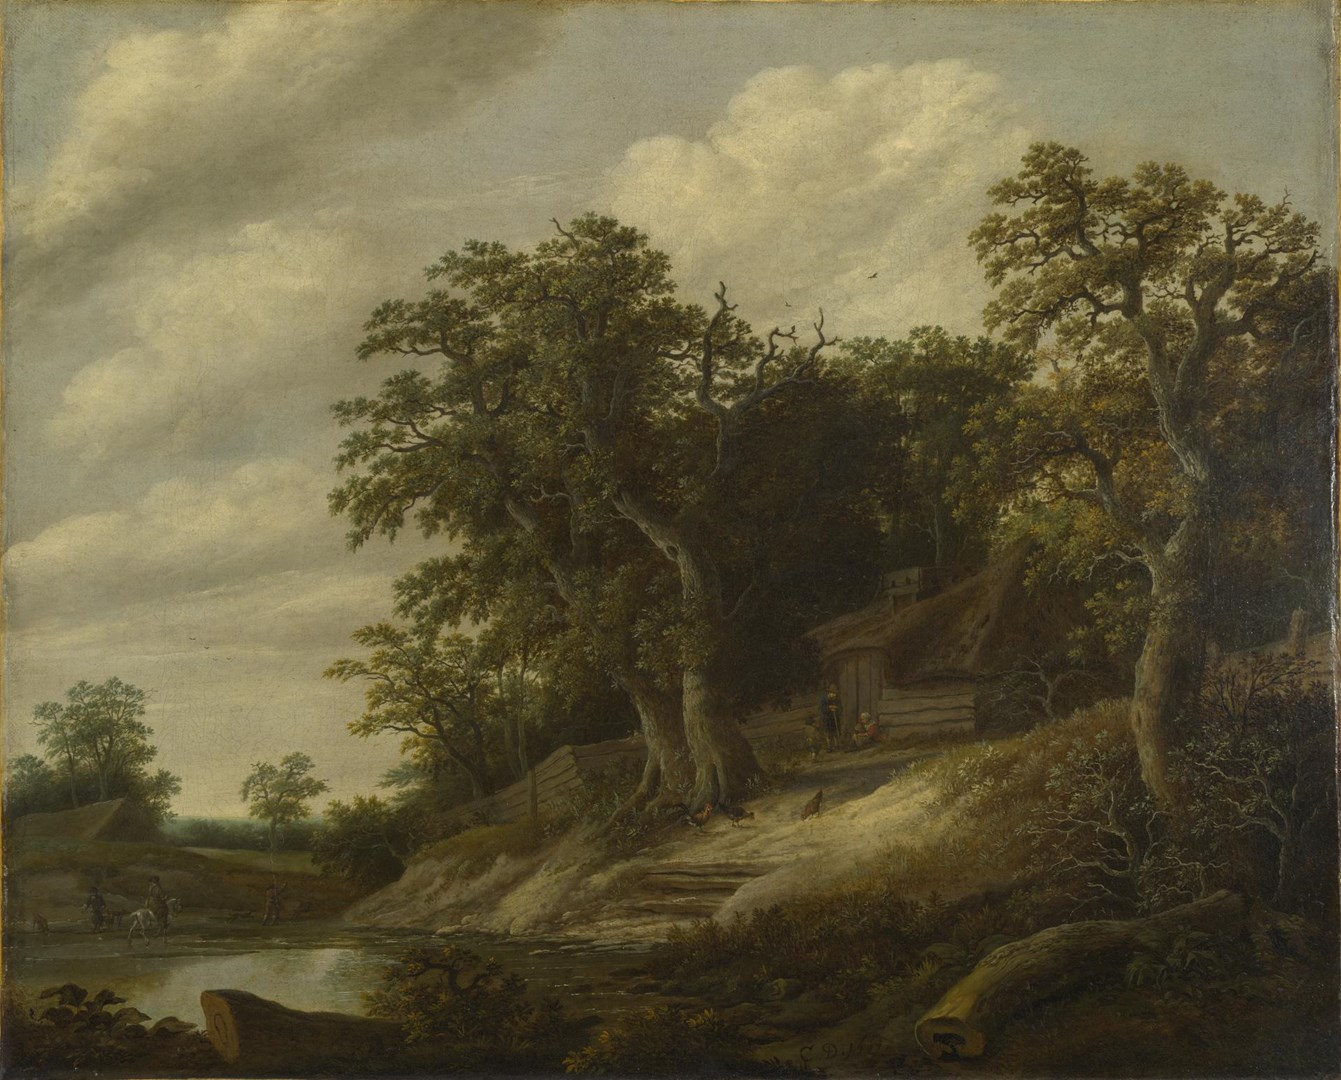 A Cottage among Trees on the Bank of a Stream by Cornelis Decker